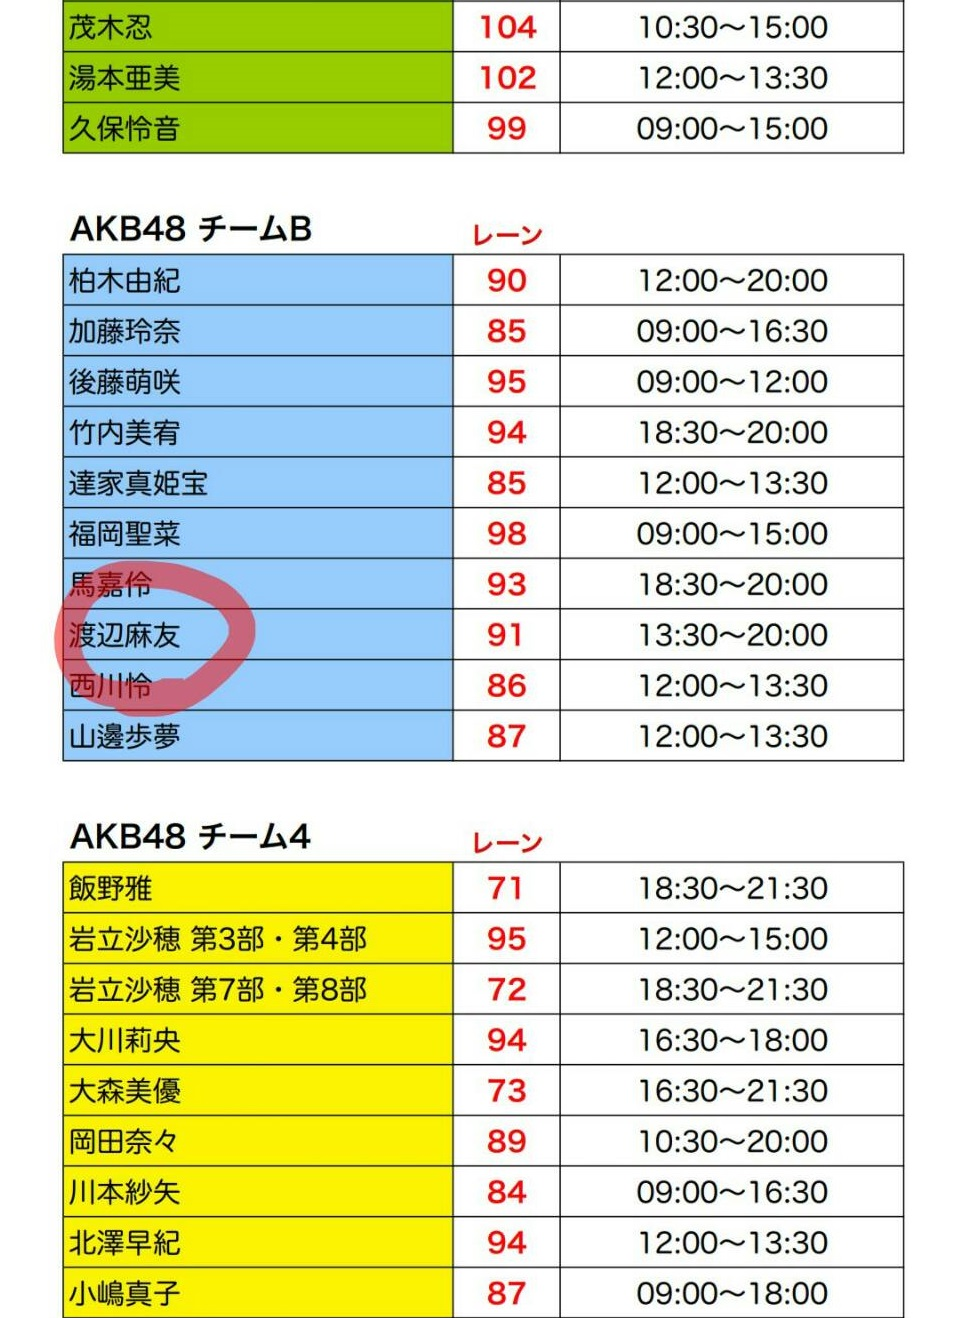 An Attempt to Meet AKB48: My Experience, Mistakes, Tips, & Tricks